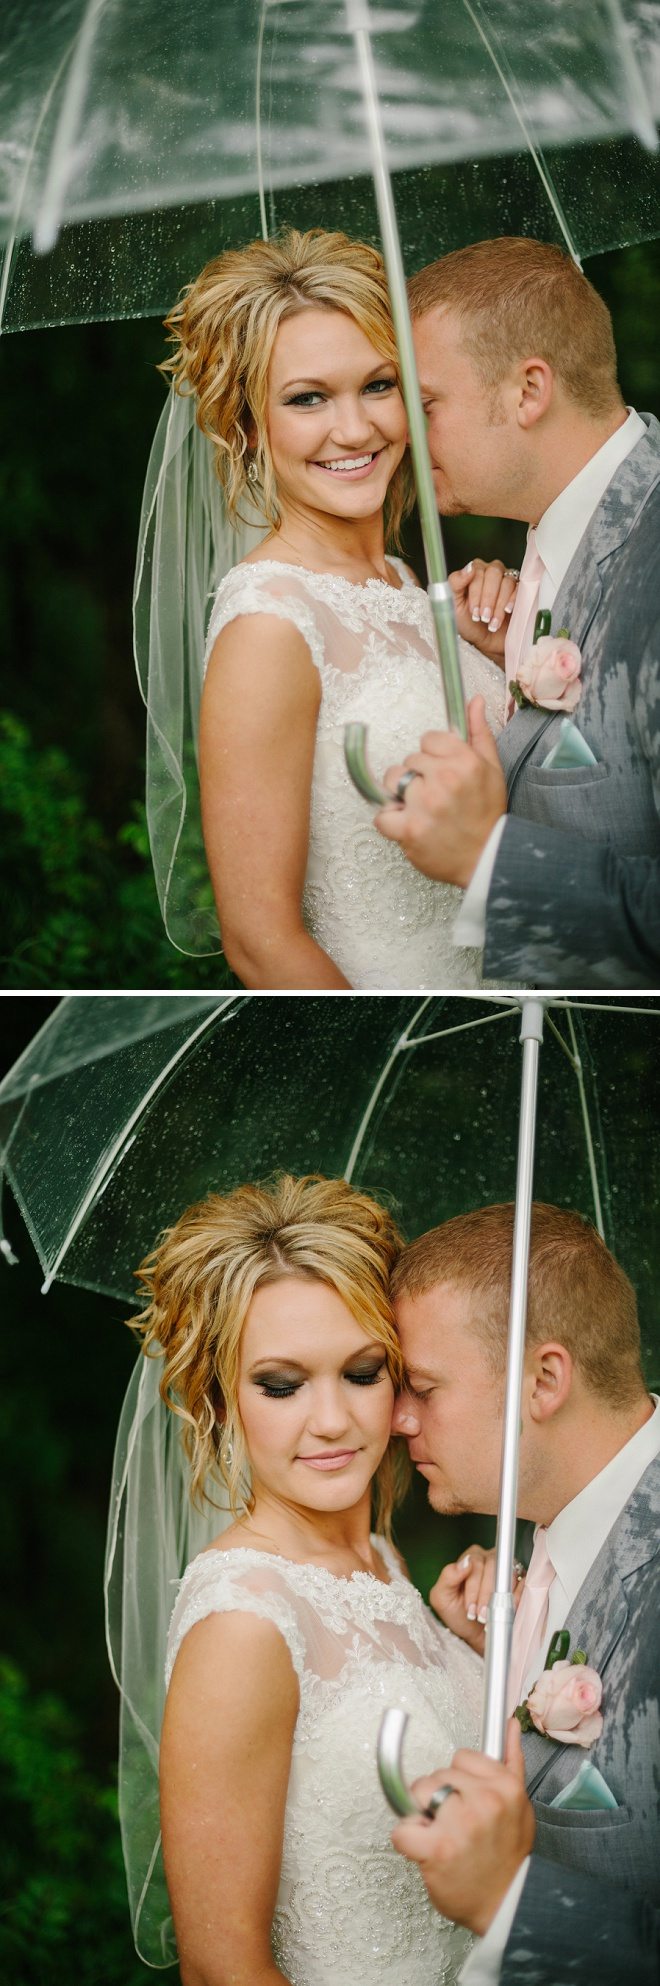 Gorgeous rainy day wedding!